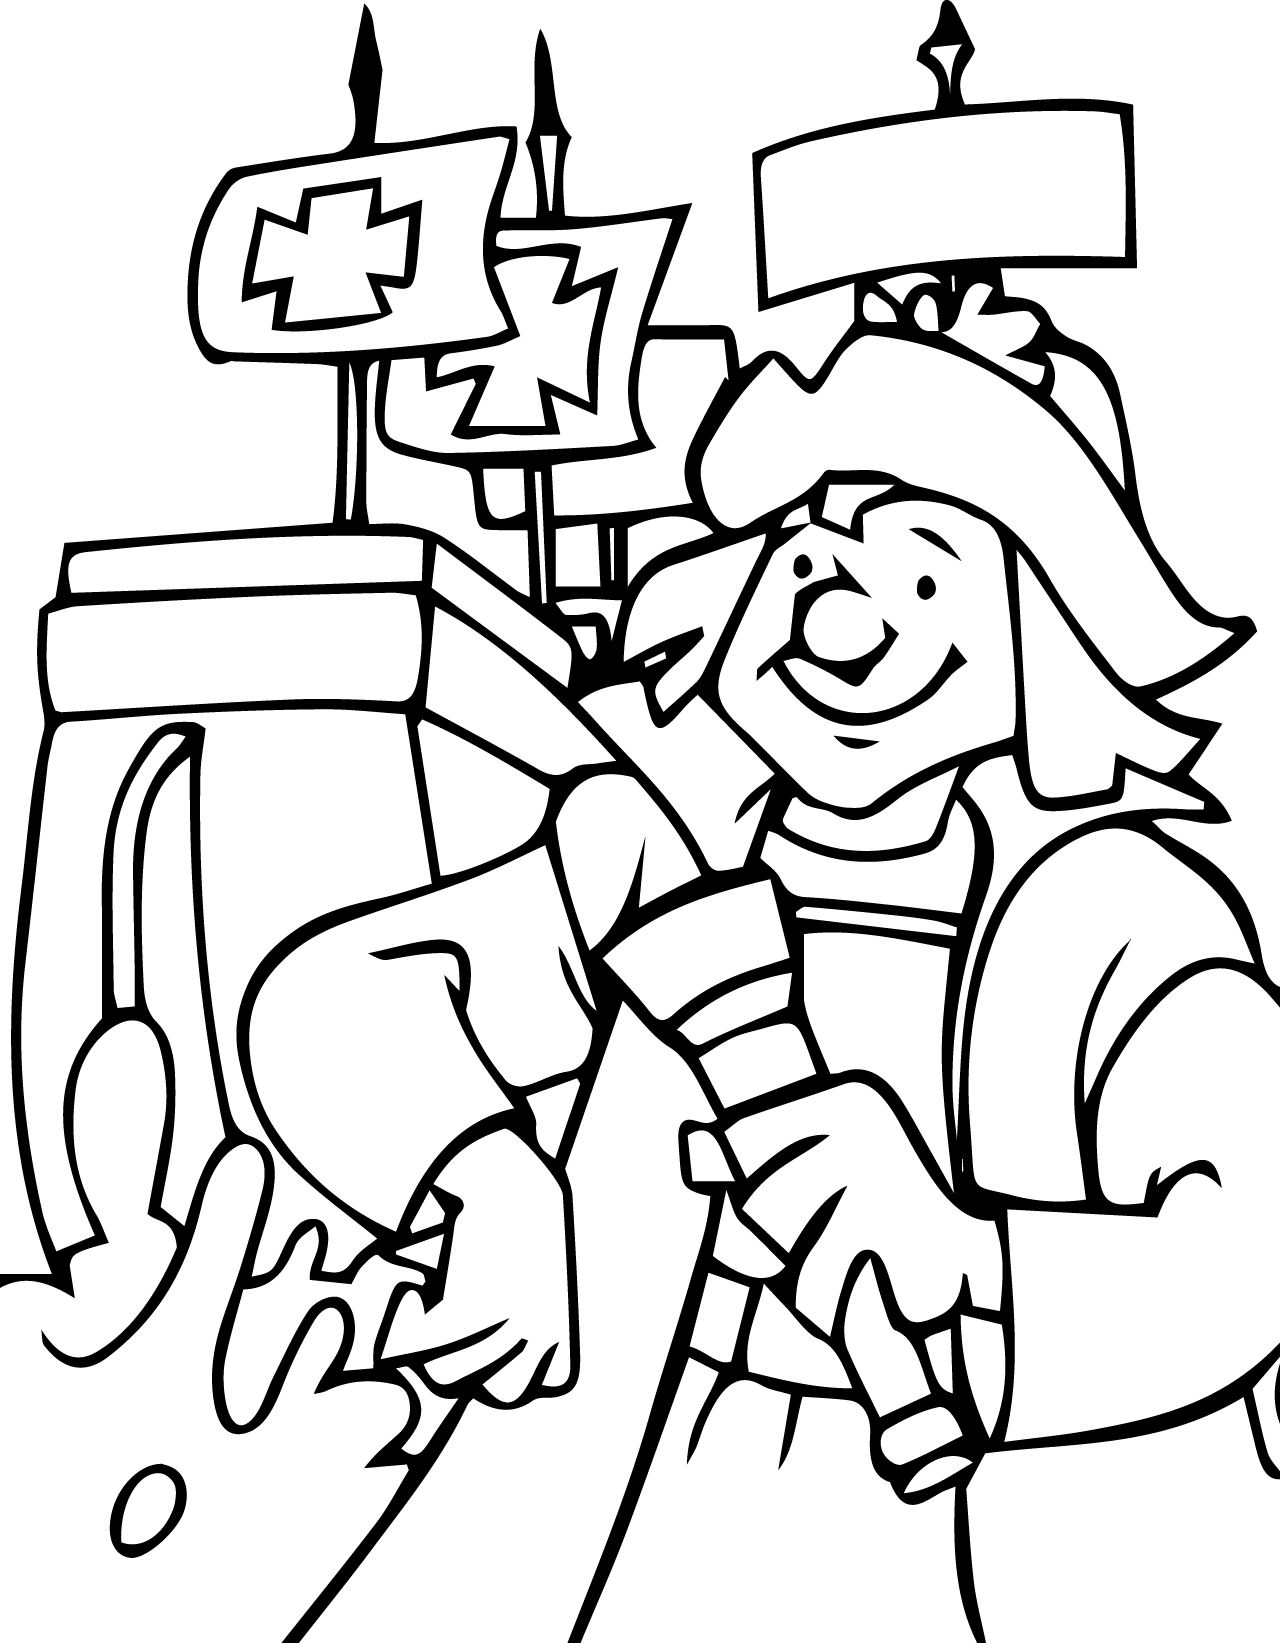 Christopher Columbus Coloring Pages Printable At